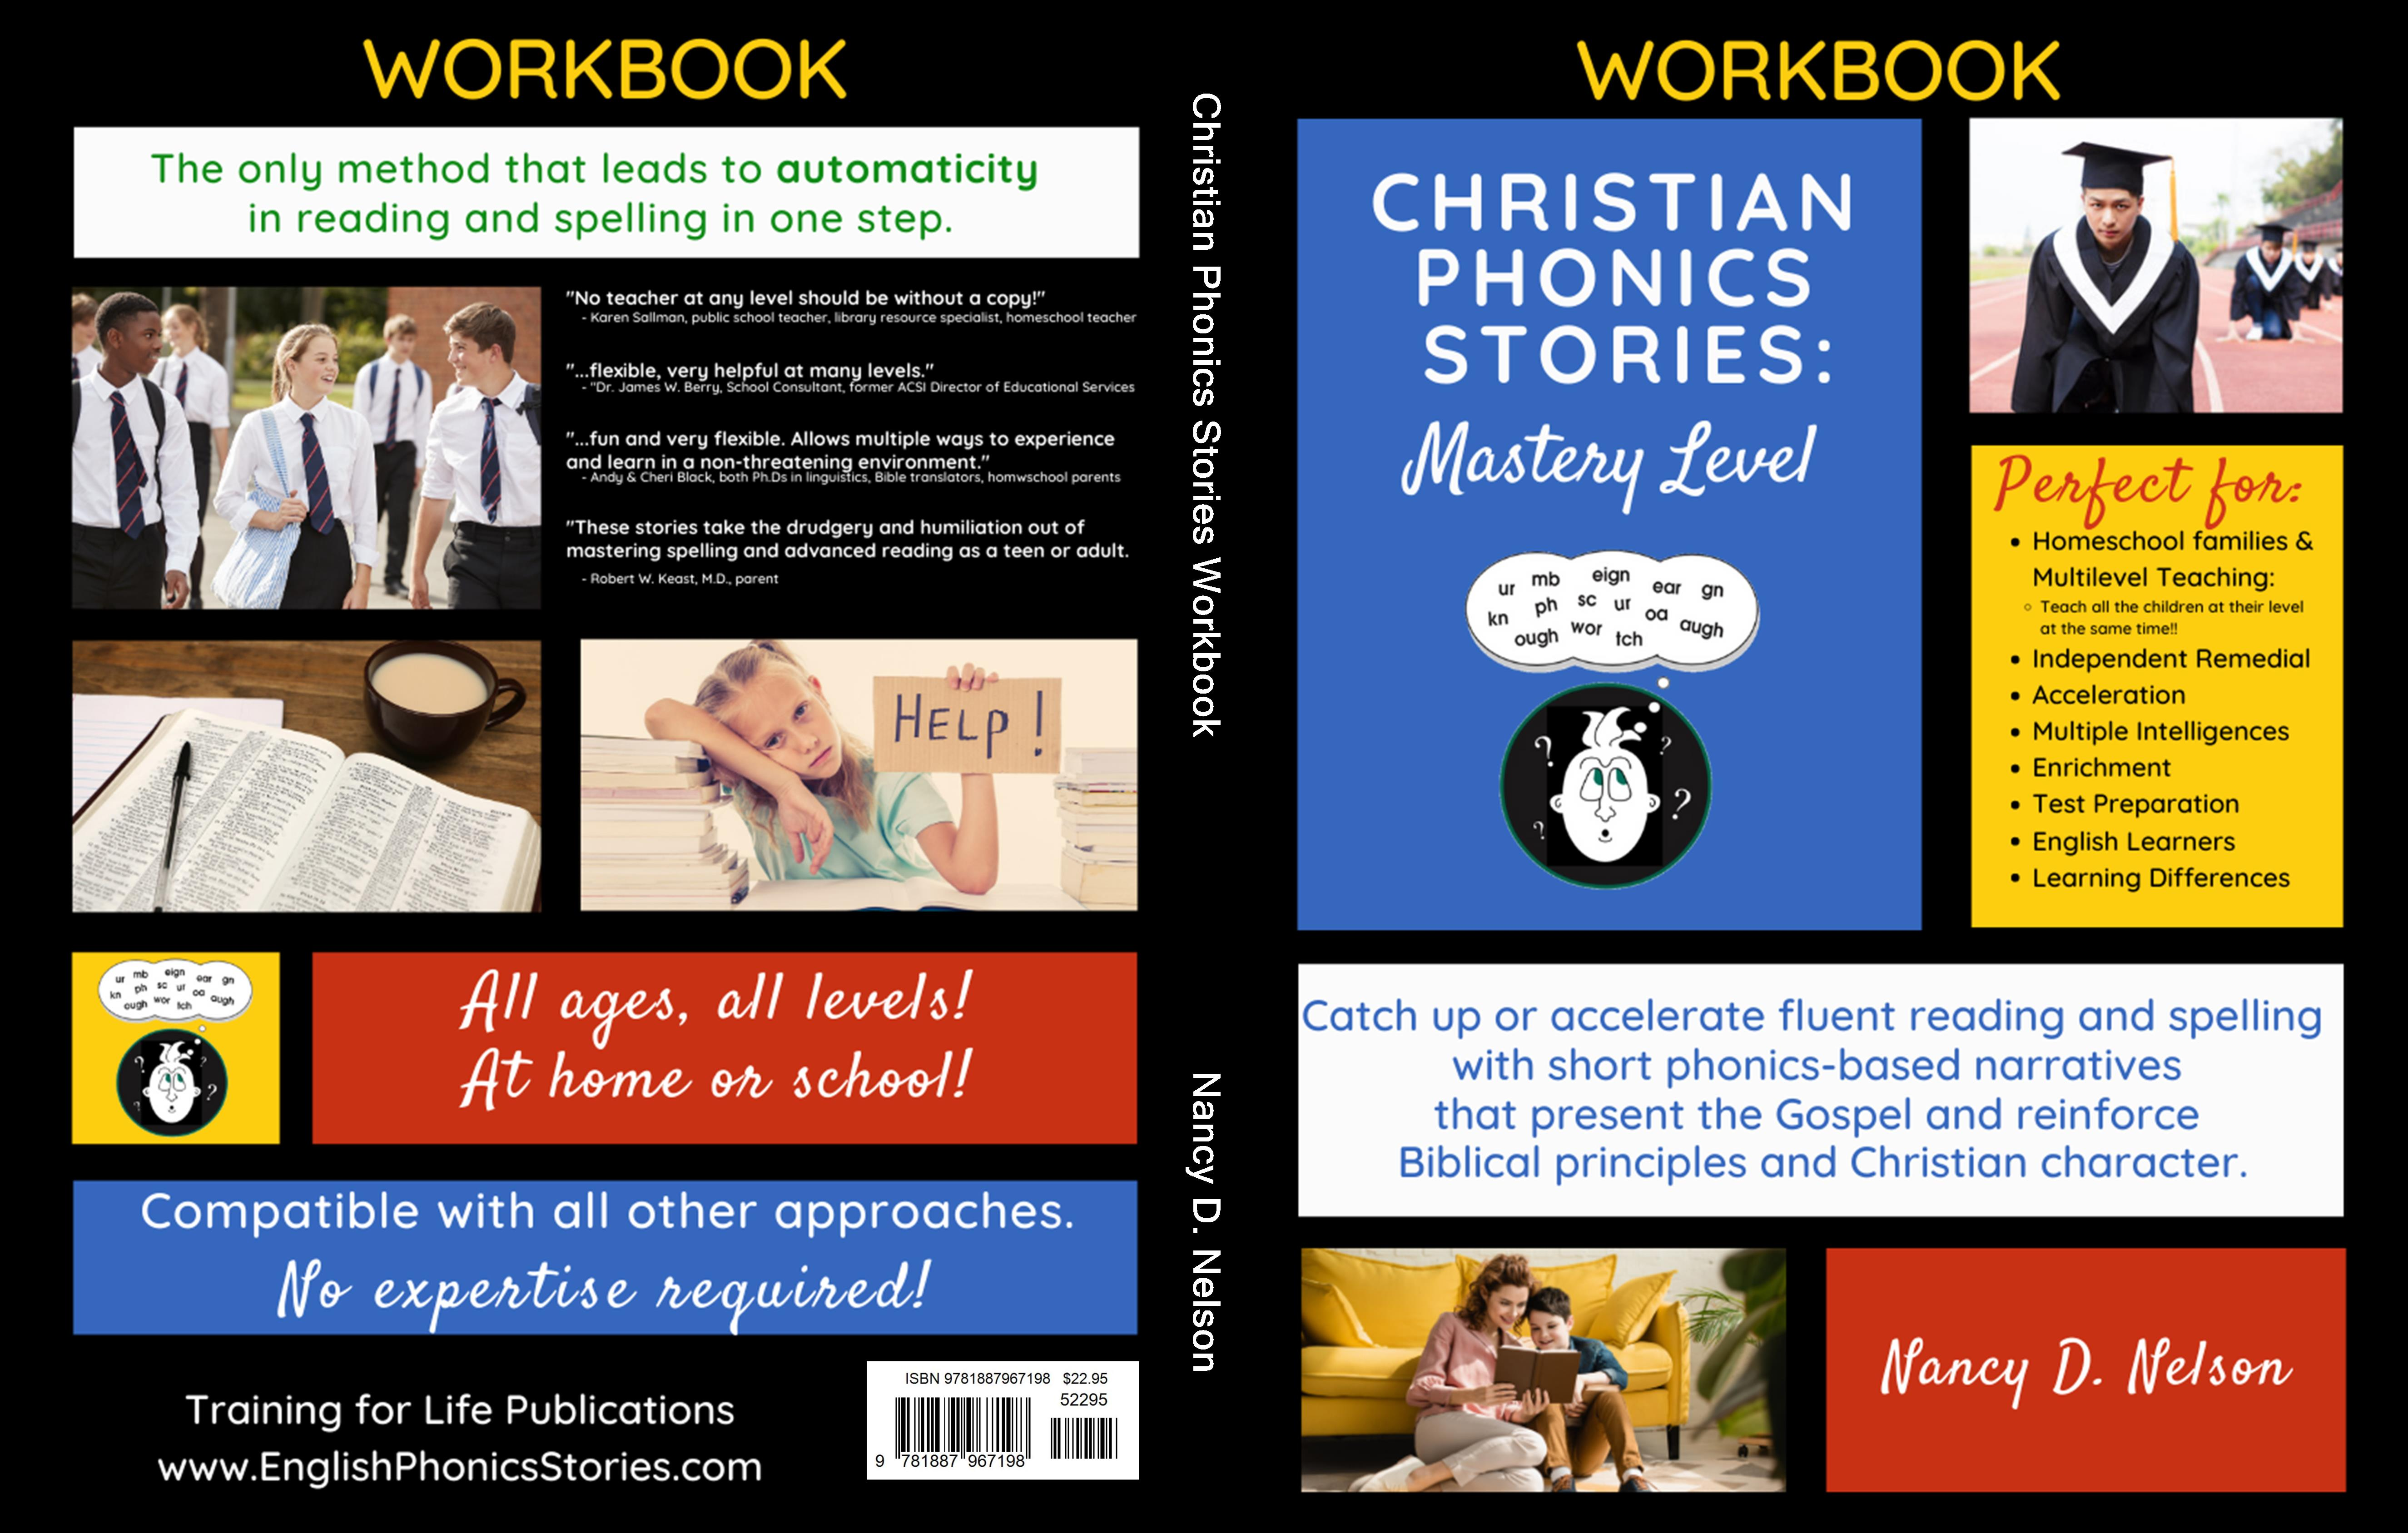 Christian Phonics Stories Workbook cover image